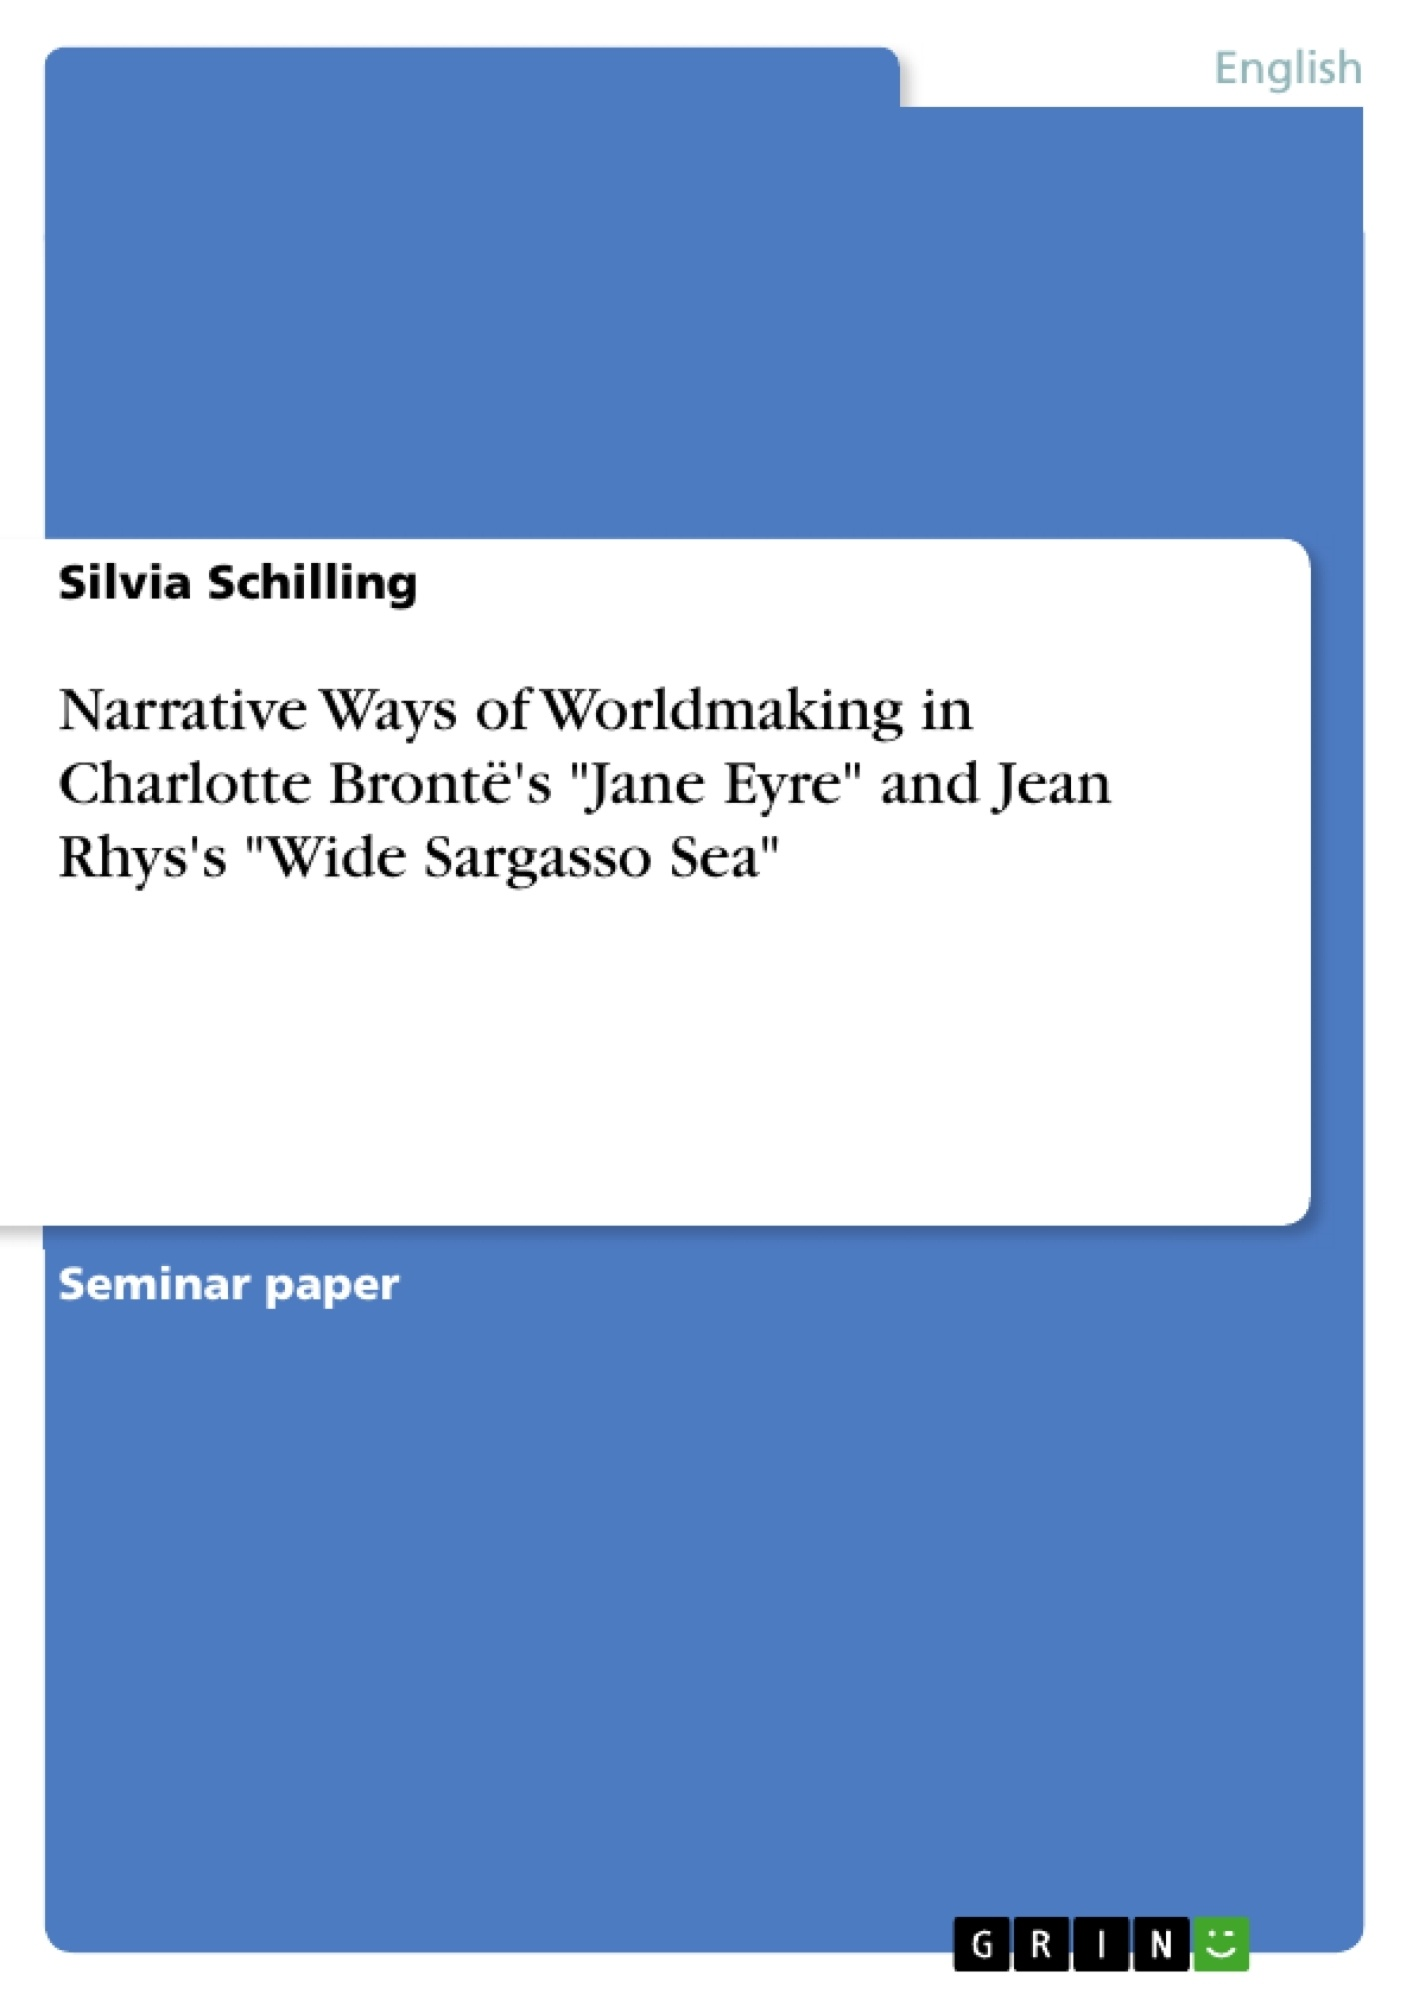 """Title: Narrative Ways of Worldmaking in Charlotte Brontë's """"Jane Eyre"""" and Jean Rhys's """"Wide Sargasso Sea"""""""